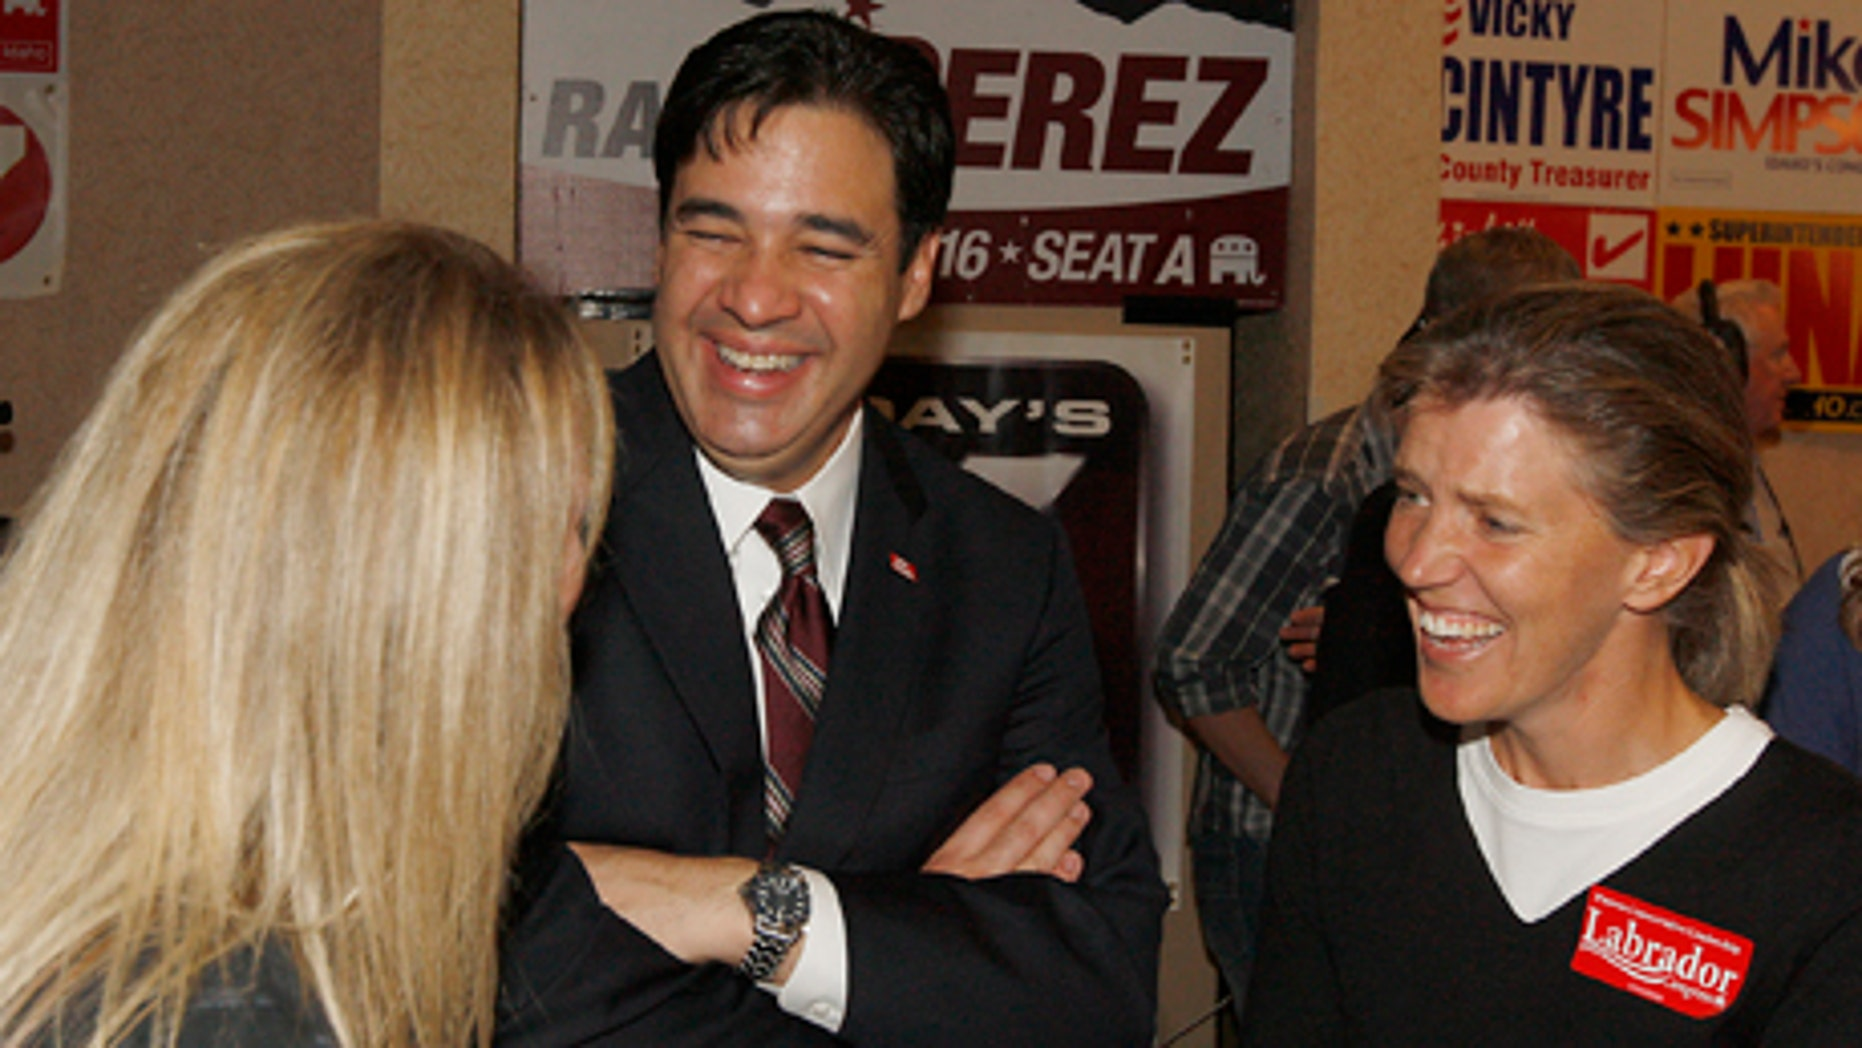 Raul Labrador talks with supporters Martha Johnson, right, and Kathy Johnson, left, at the Republican Party Election Headquarters at a hotel in Boise, Idaho on Tuesday, Nov. 2, 2010. Labrador is facing off against Democratic incumbant Walt Minnick for Idaho's 1st Congressional District.  (AP Photo/Matt Cilley)